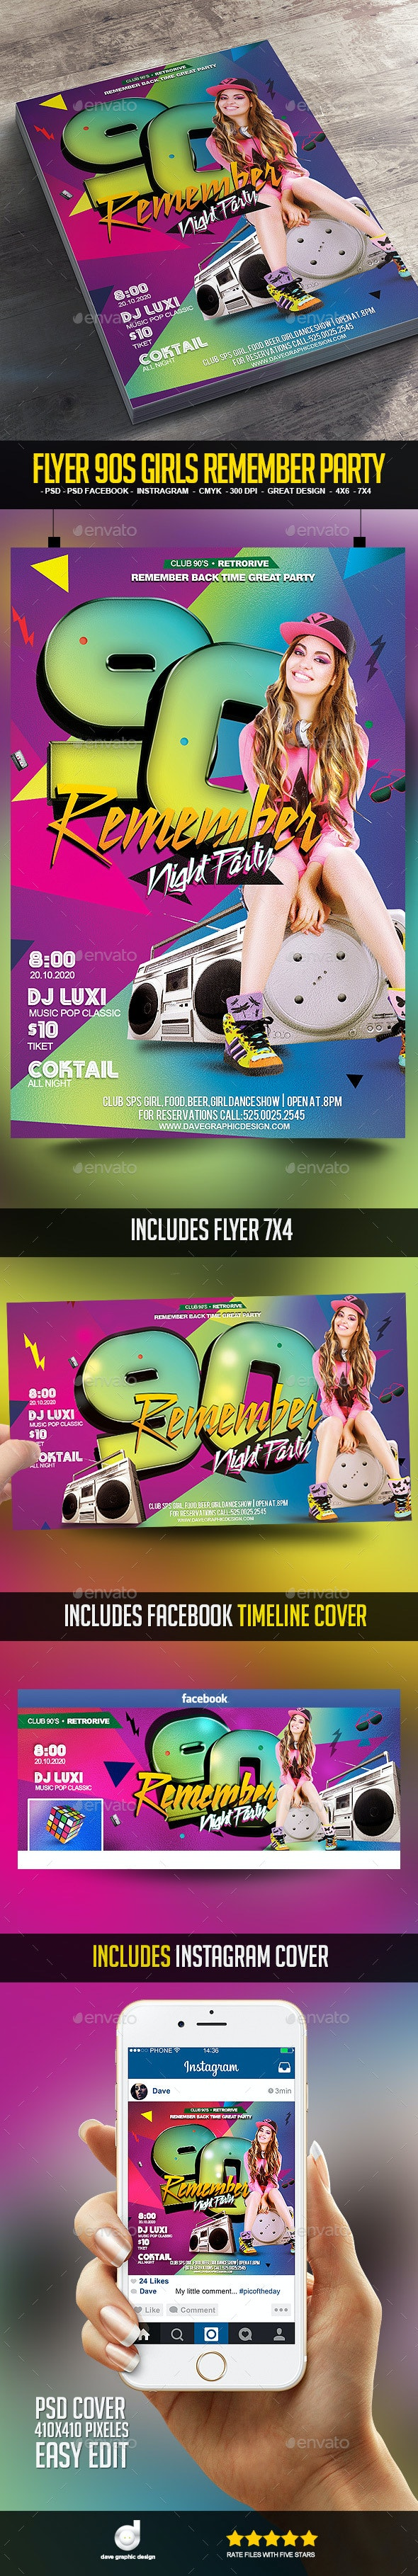 Flyer 90's Girls Remember Party - Clubs & Parties Events